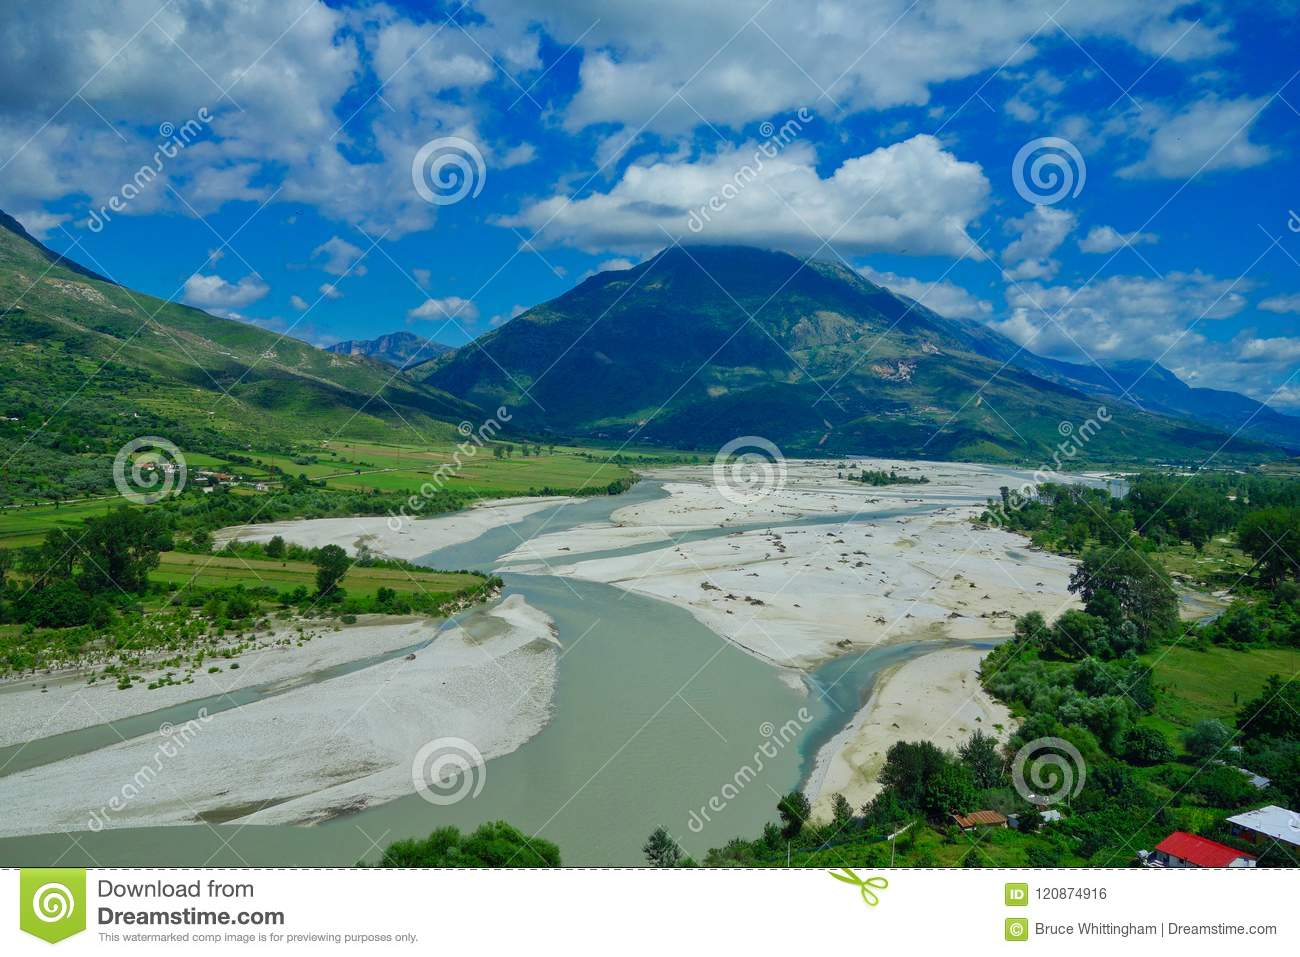 Albania landscape; Mountains, River and Forest